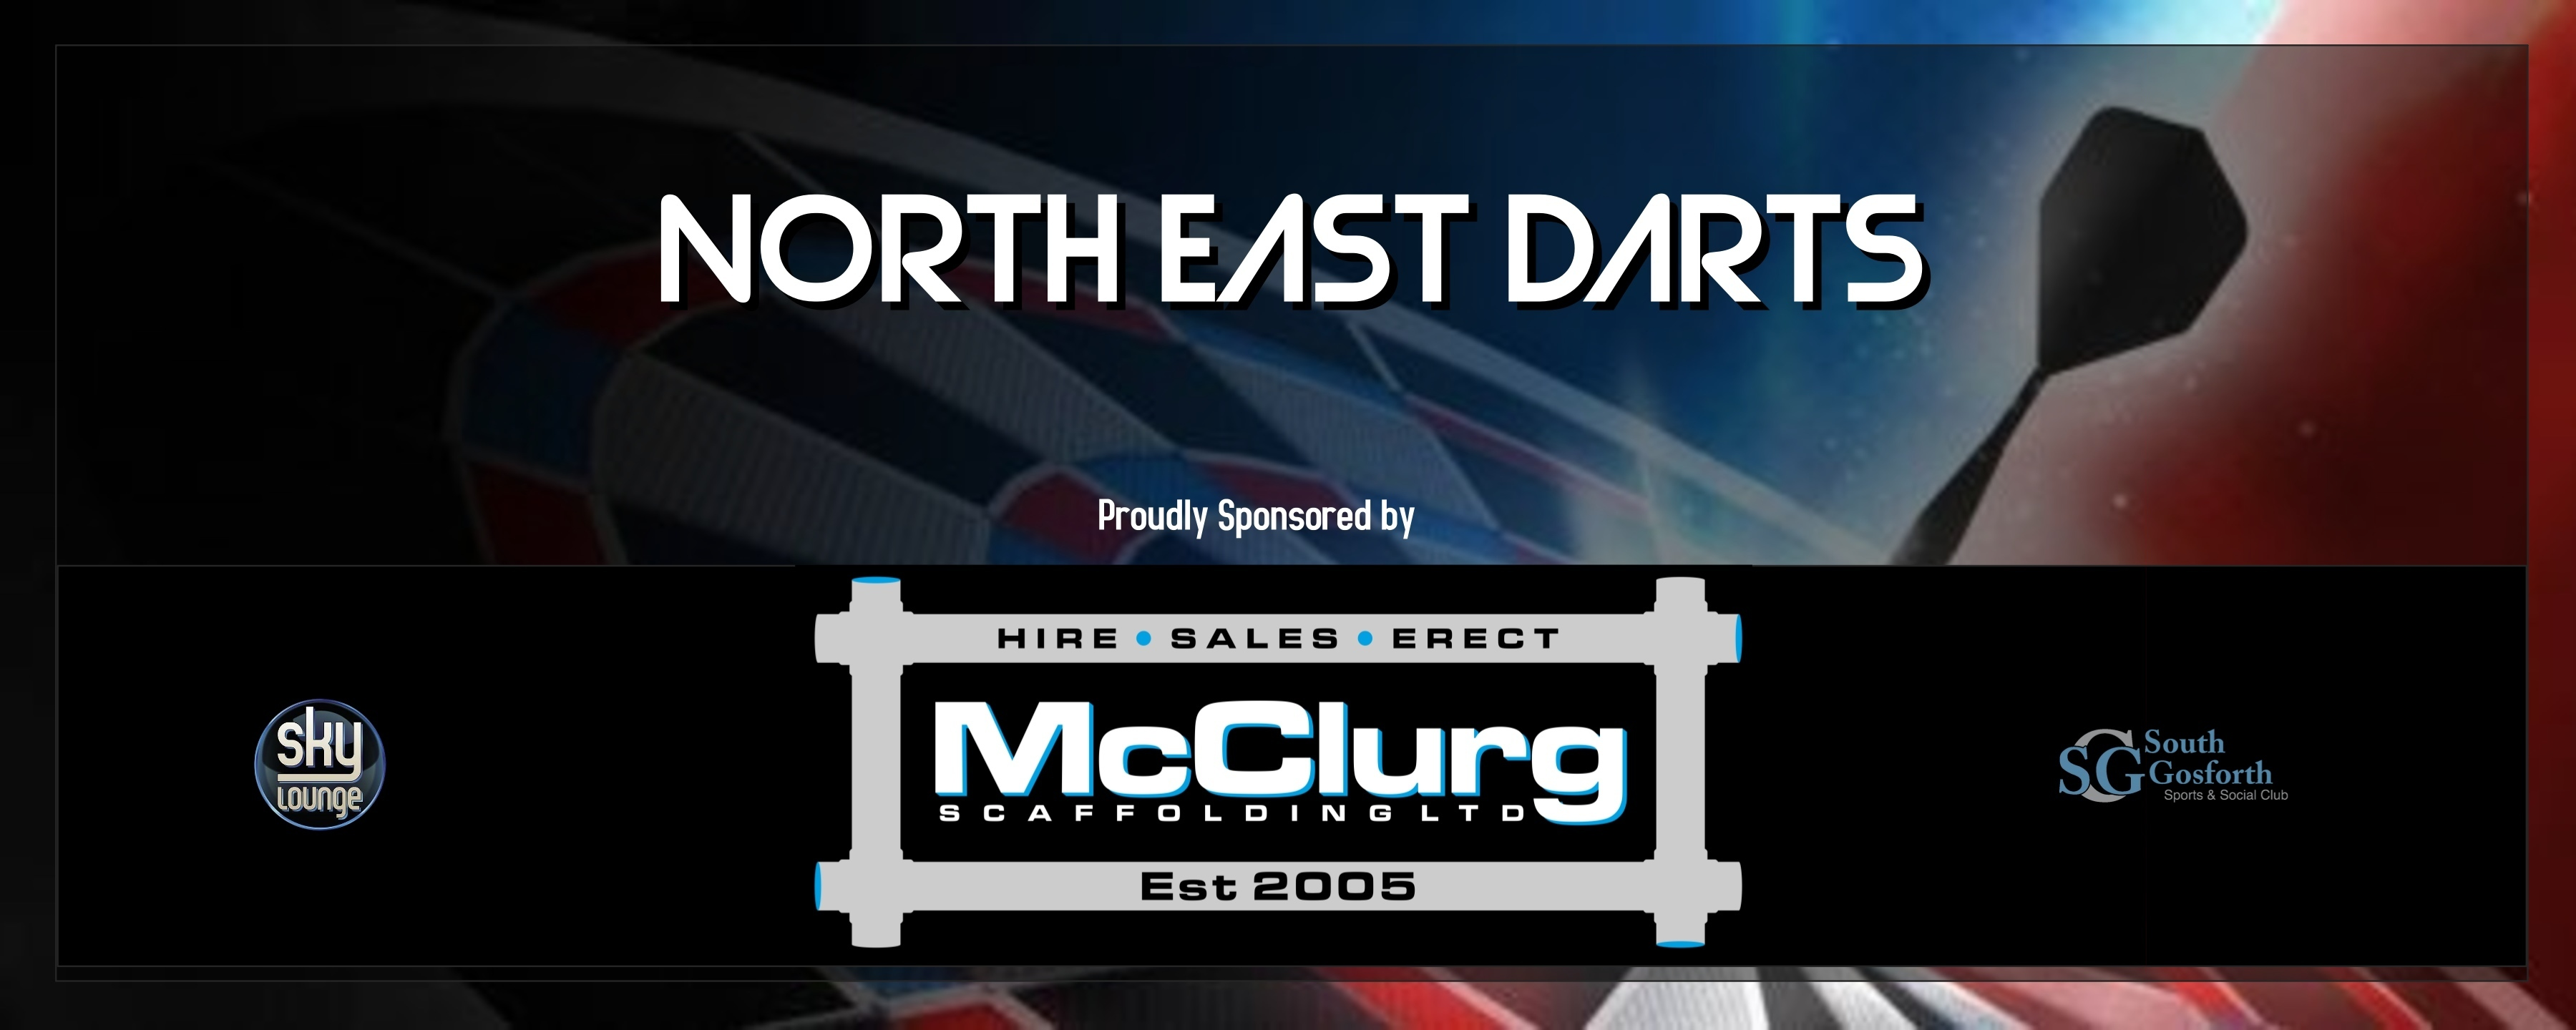 North East Darts